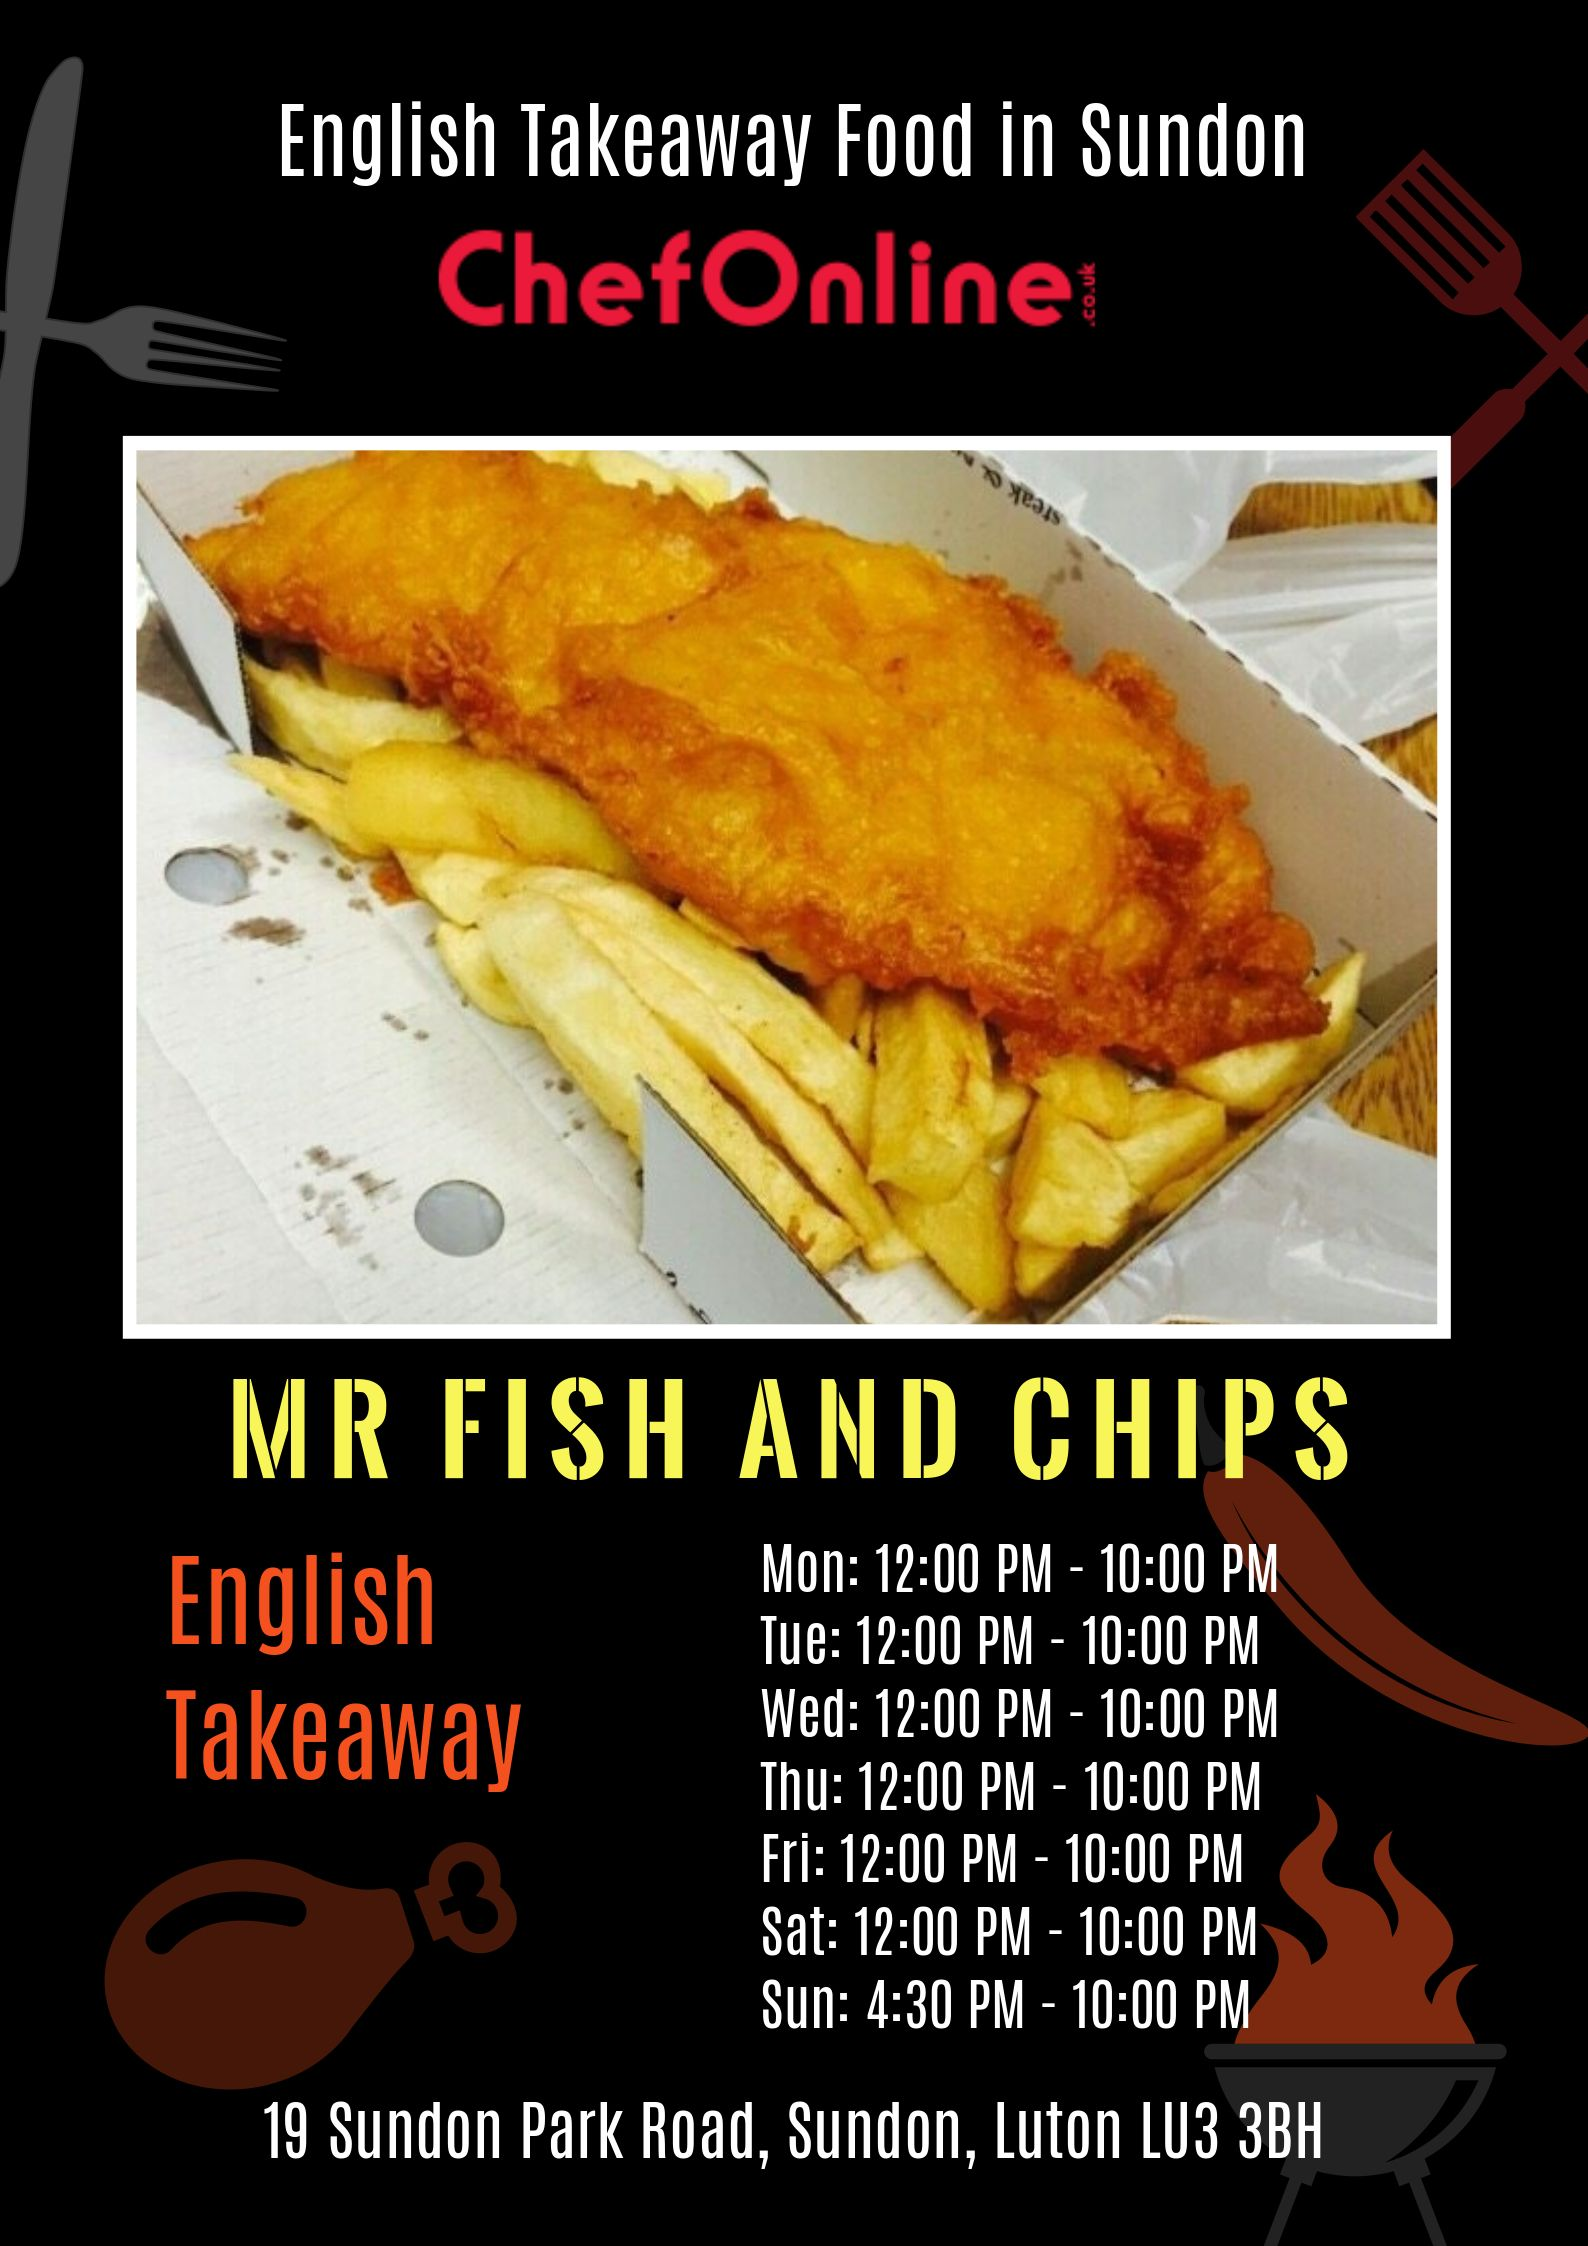 Mr fish and chips is an english takeaway in sundon lu3 3bh